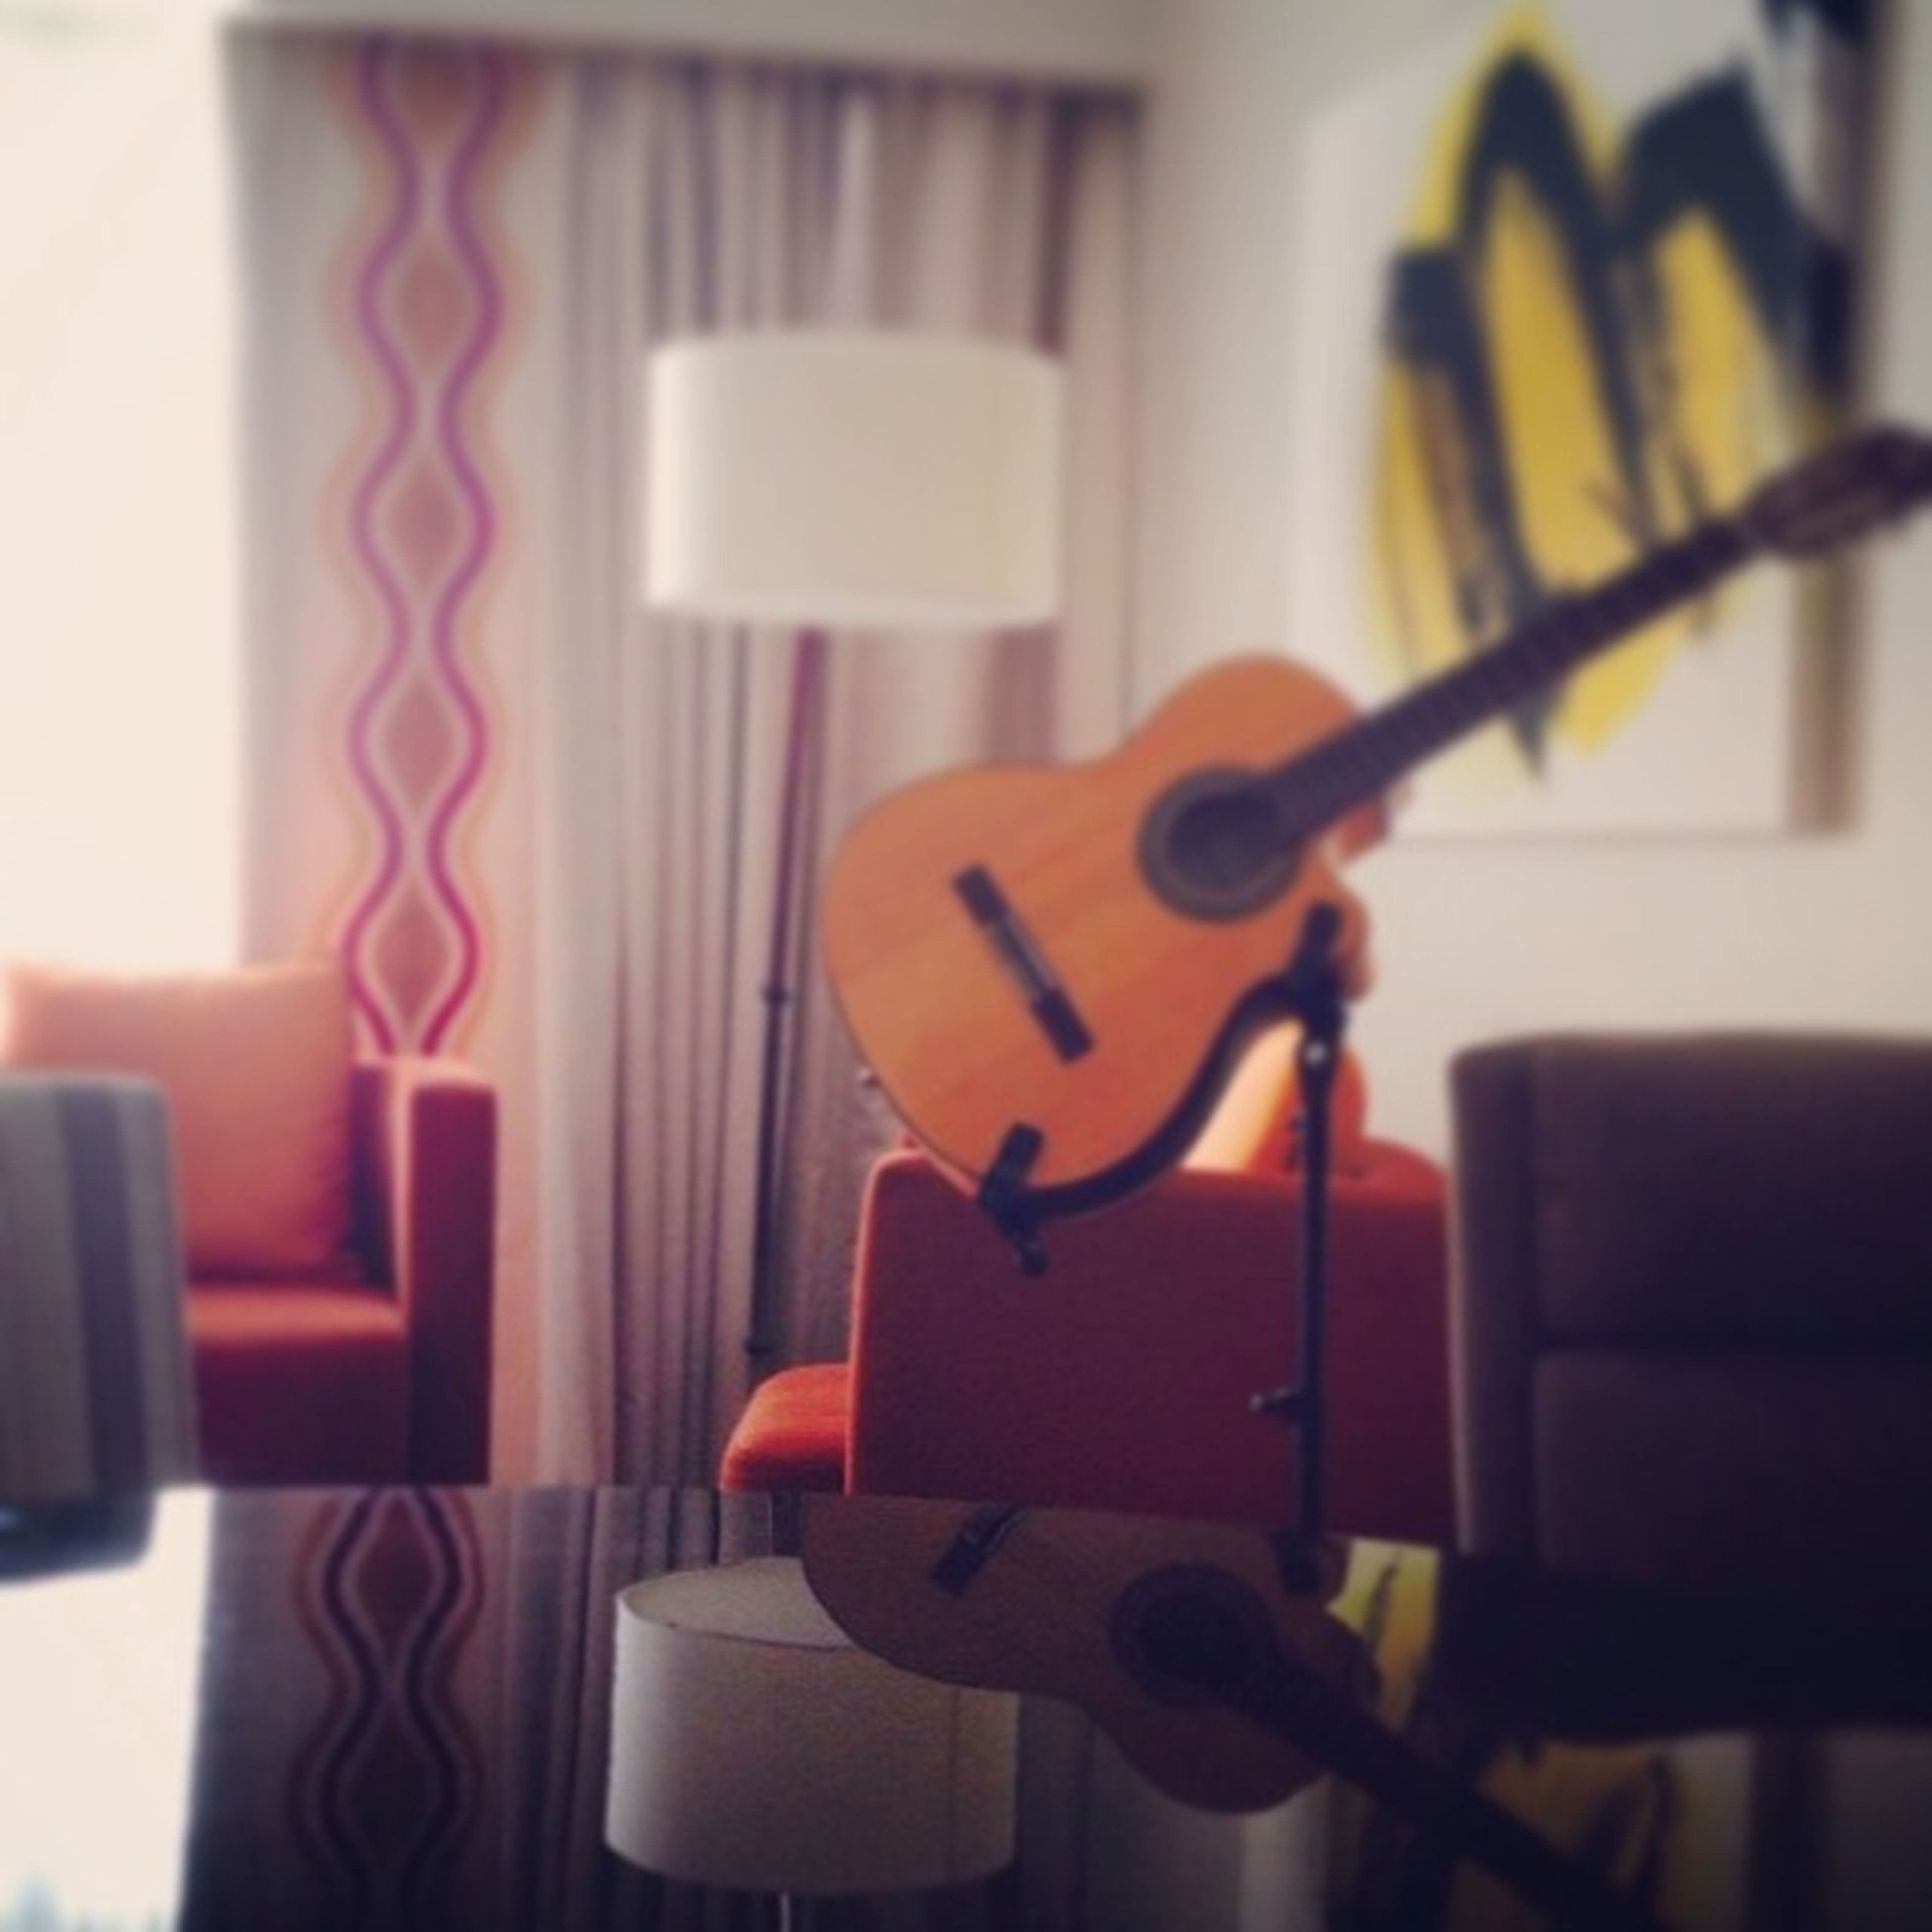 indoors, musical instrument, music, arts culture and entertainment, home interior, technology, focus on foreground, chair, musical equipment, guitar, selective focus, close-up, table, absence, communication, no people, still life, wireless technology, equipment, connection